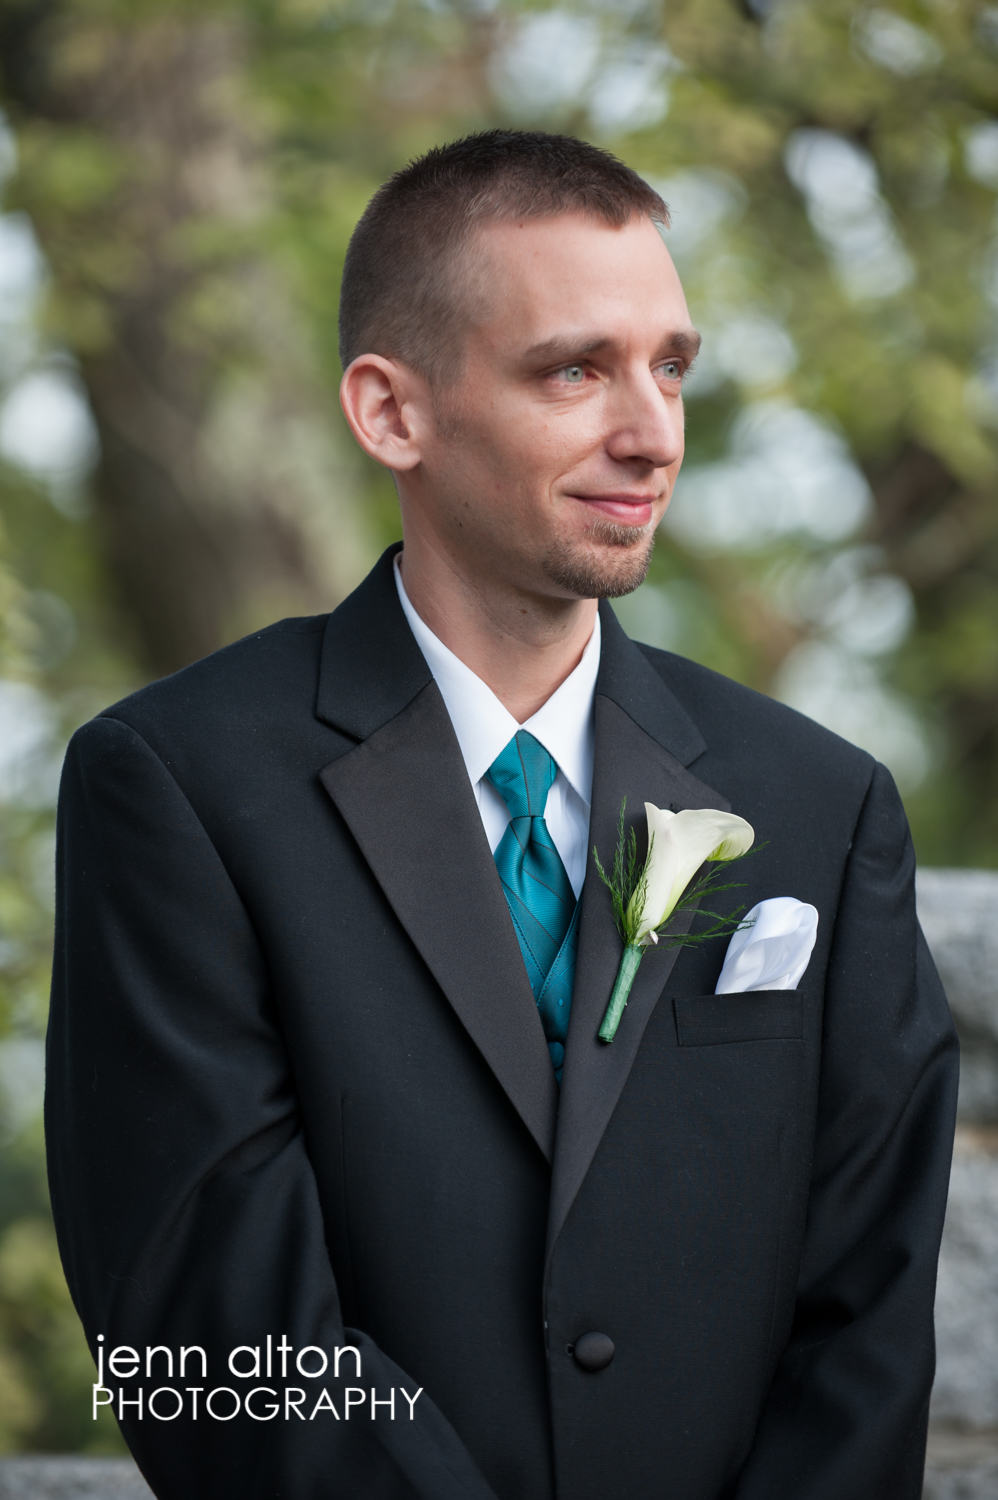 Groom's expression as bride approaches